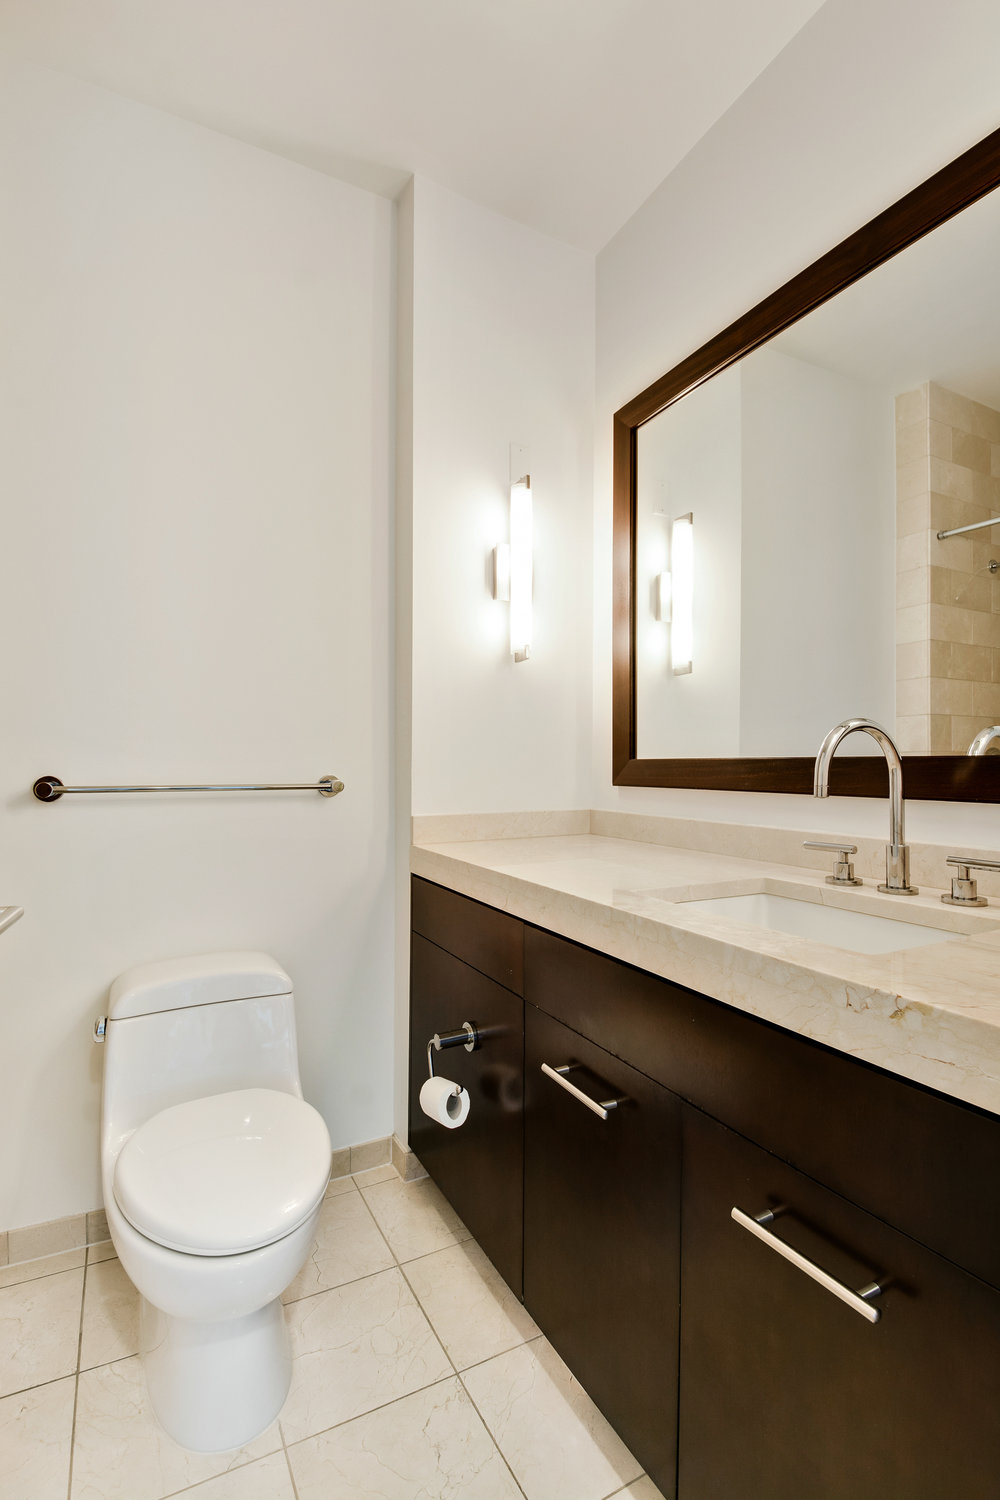 Philadelphia Luxury Home Condo-the ritz carlton residences 20H bryant wilde realty12.jpg